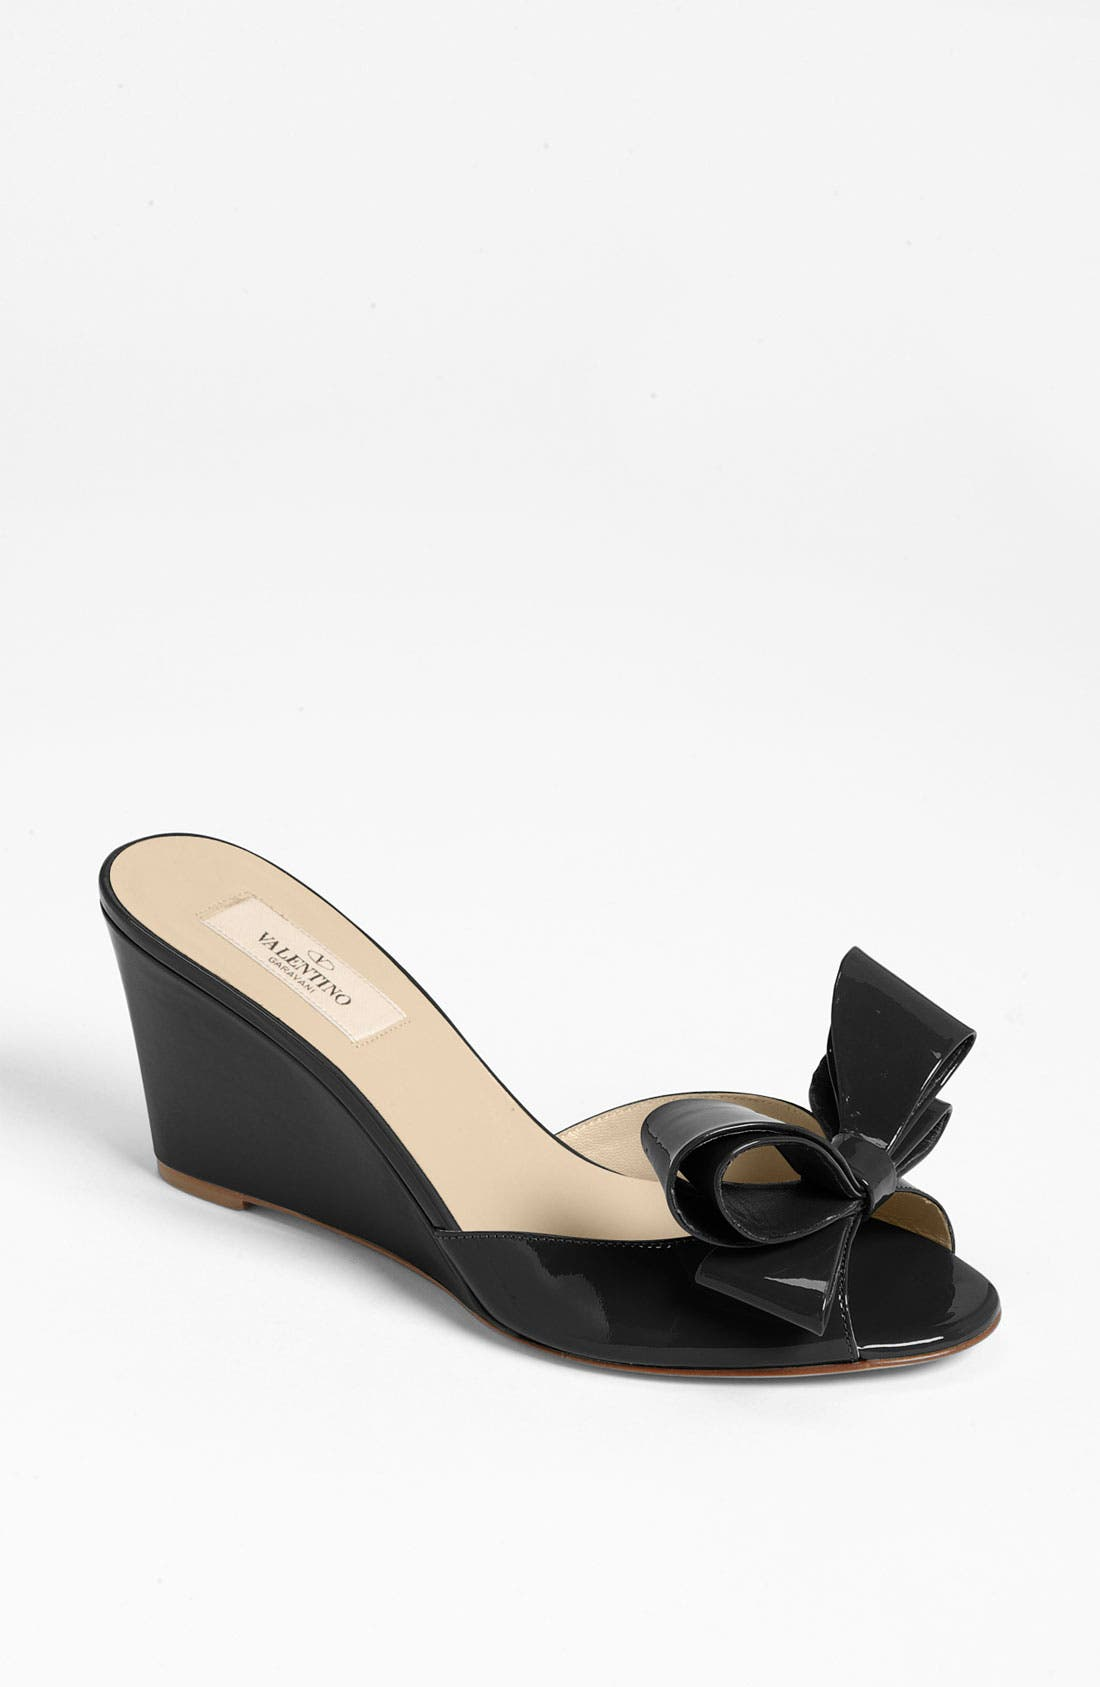 Main Image - Valentino Bow Wedge Sandal